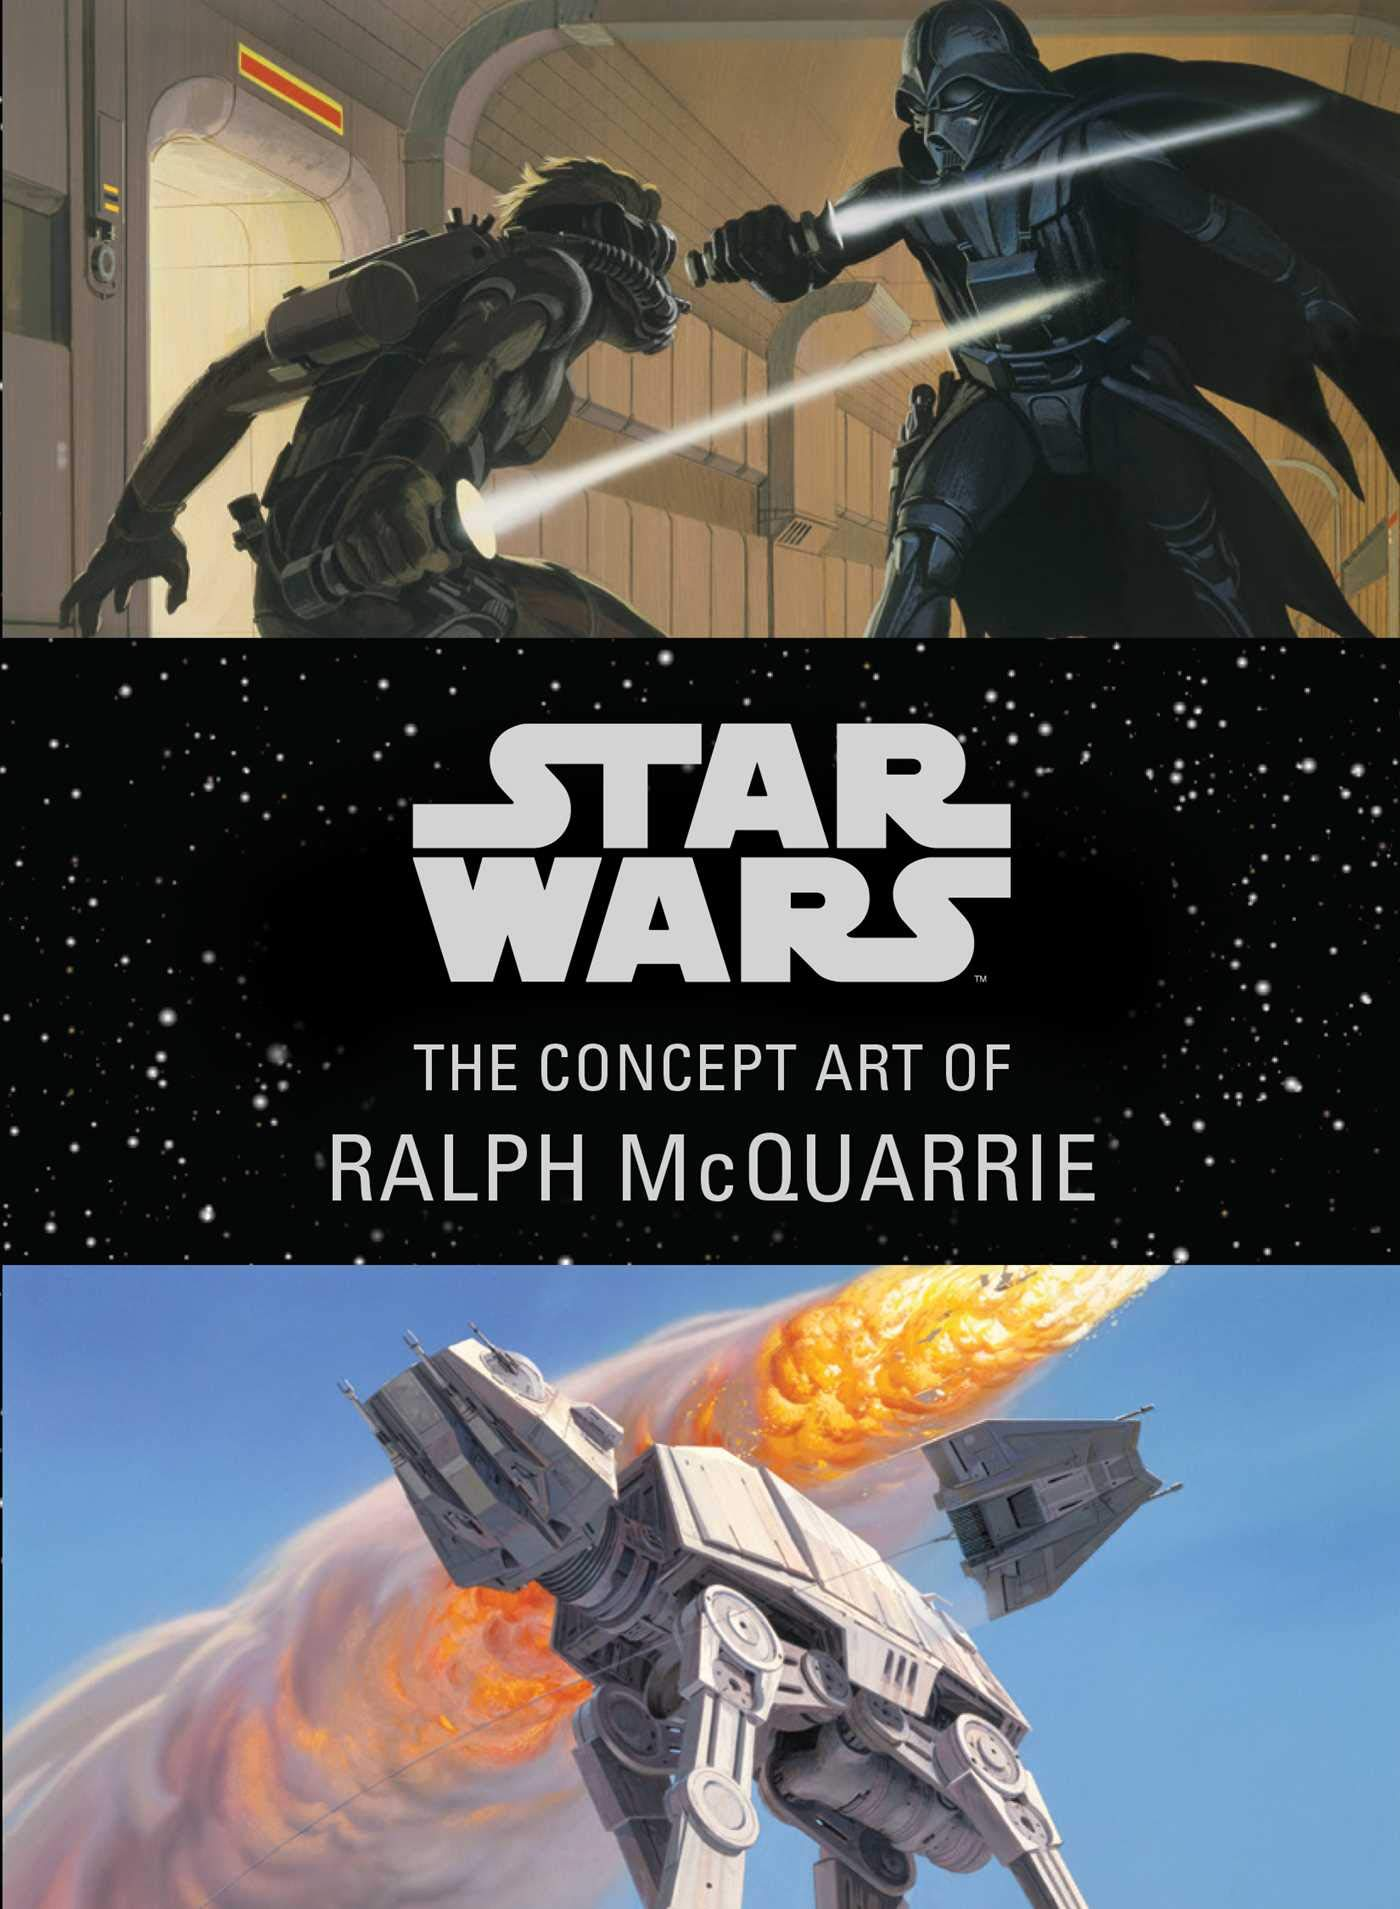 Star Wars: The Concept Art of Ralph McQuarrie Mini Book (08.10.2019)